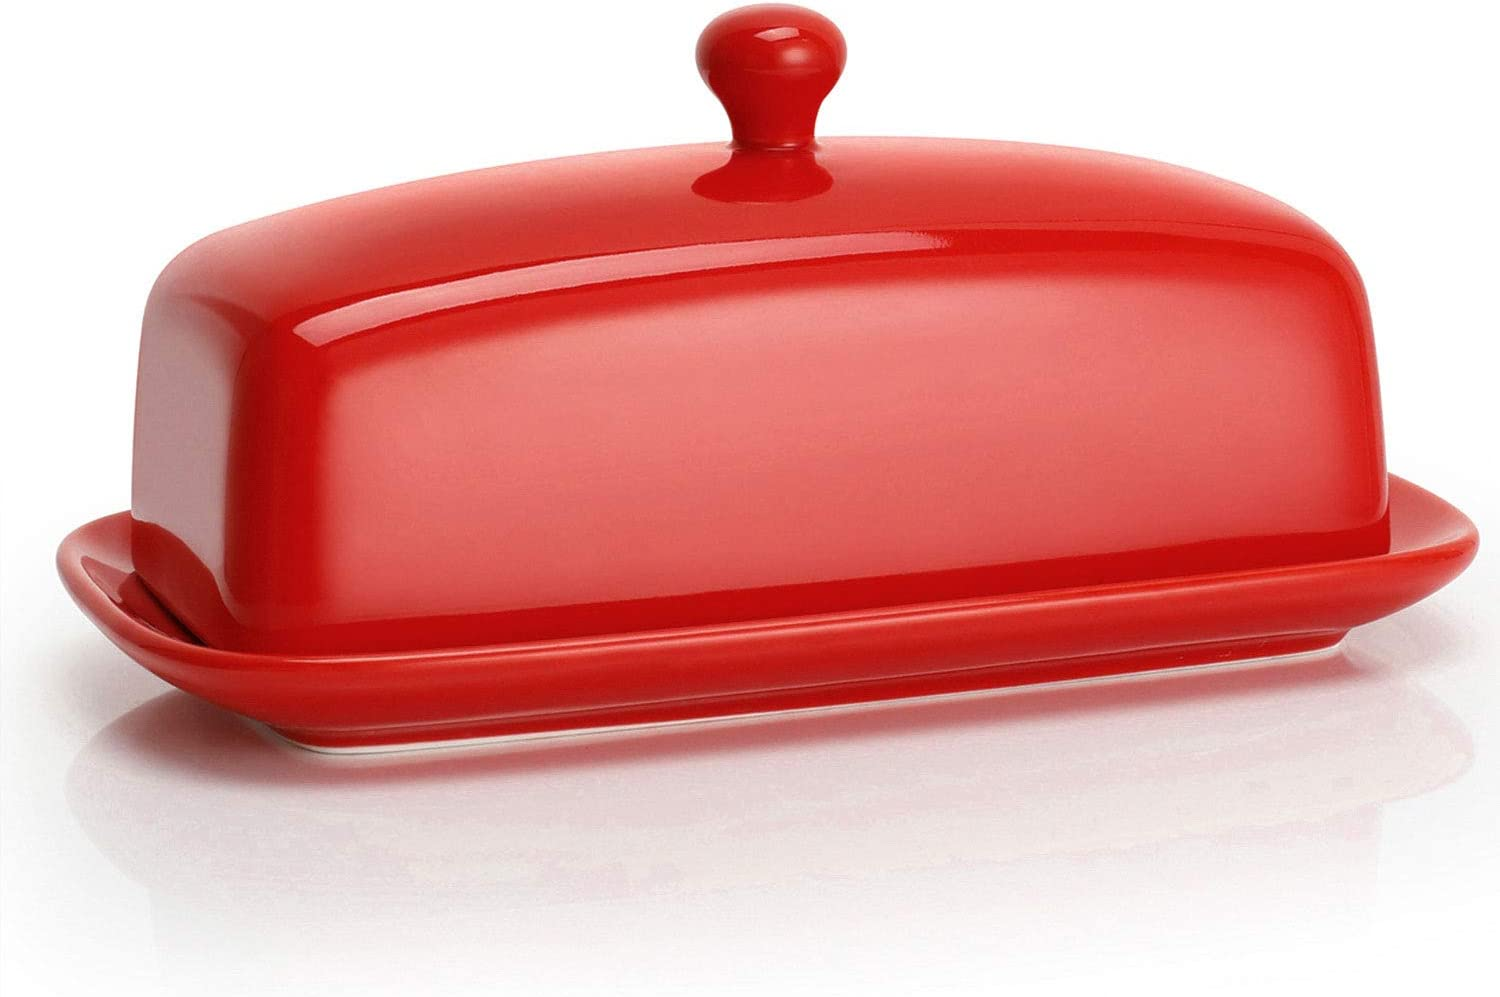 Sweese 8.8 Porcelain Butter Dish with Lid, Perfect for East West Coast  Butter, Red